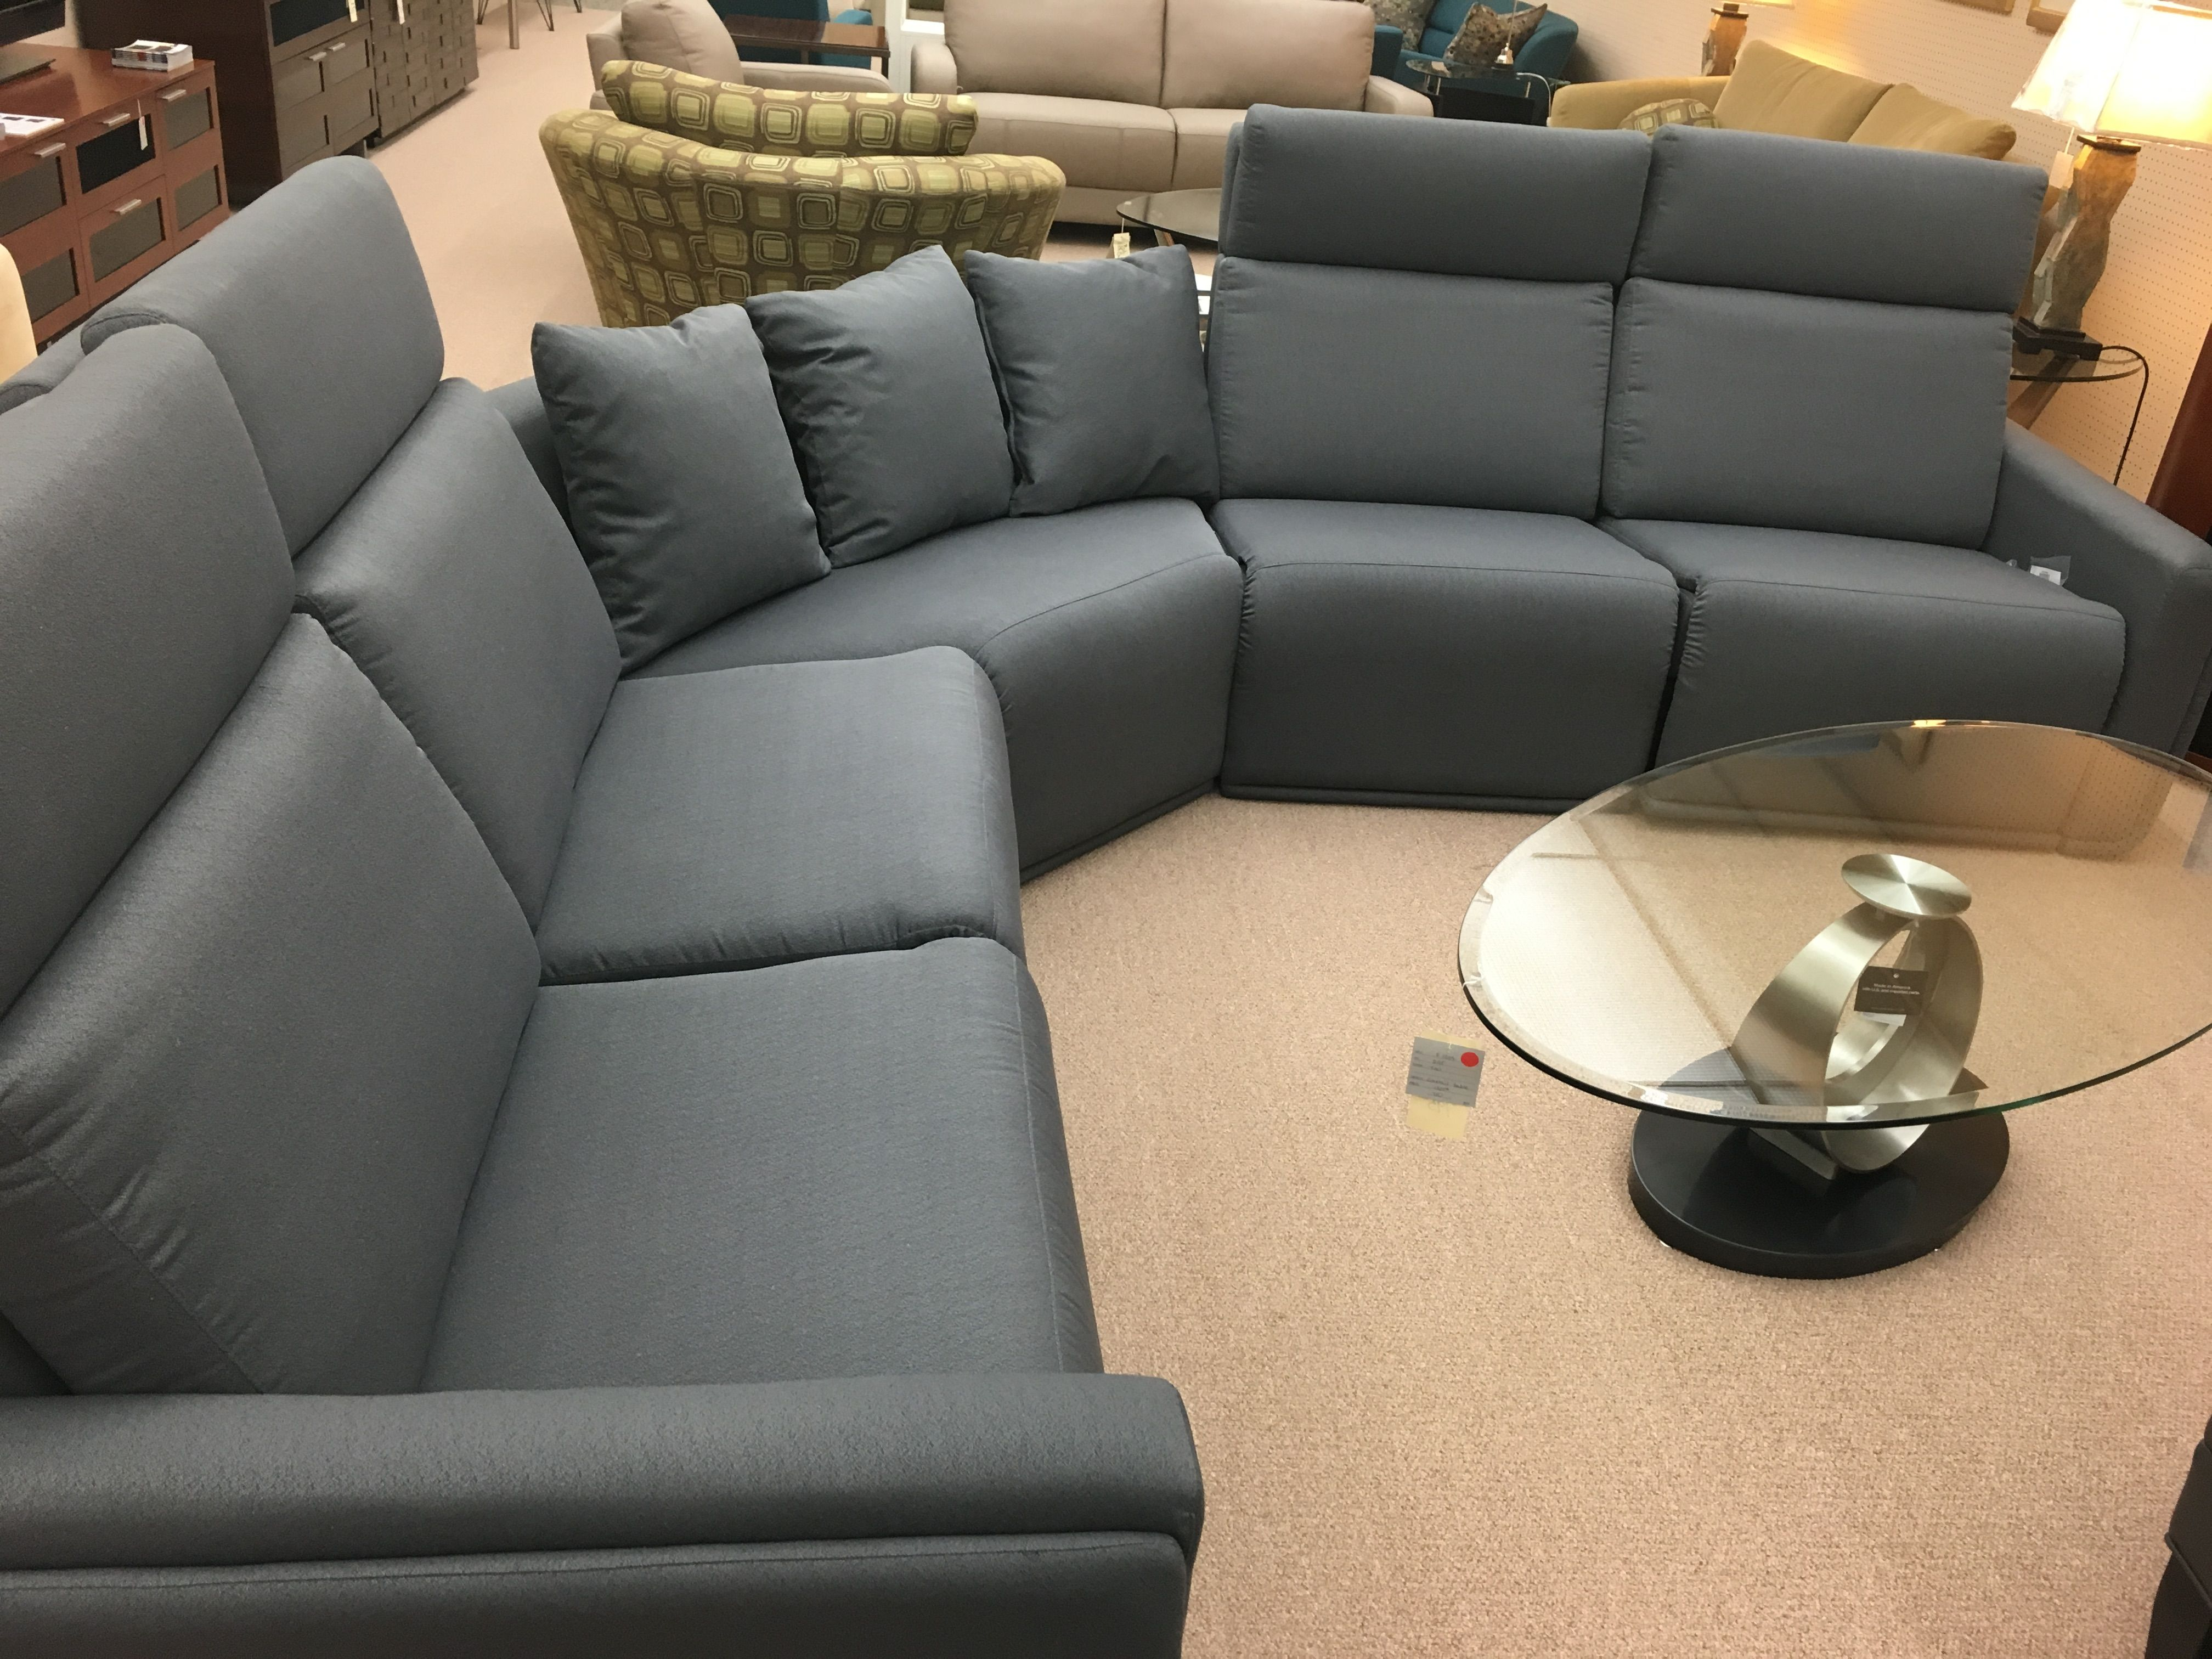 Alto Fabric Sectional With Wedge By Jaymar. Adjustable Headrest, Full  Footrest. From Ellis Brothers Furniture Store.